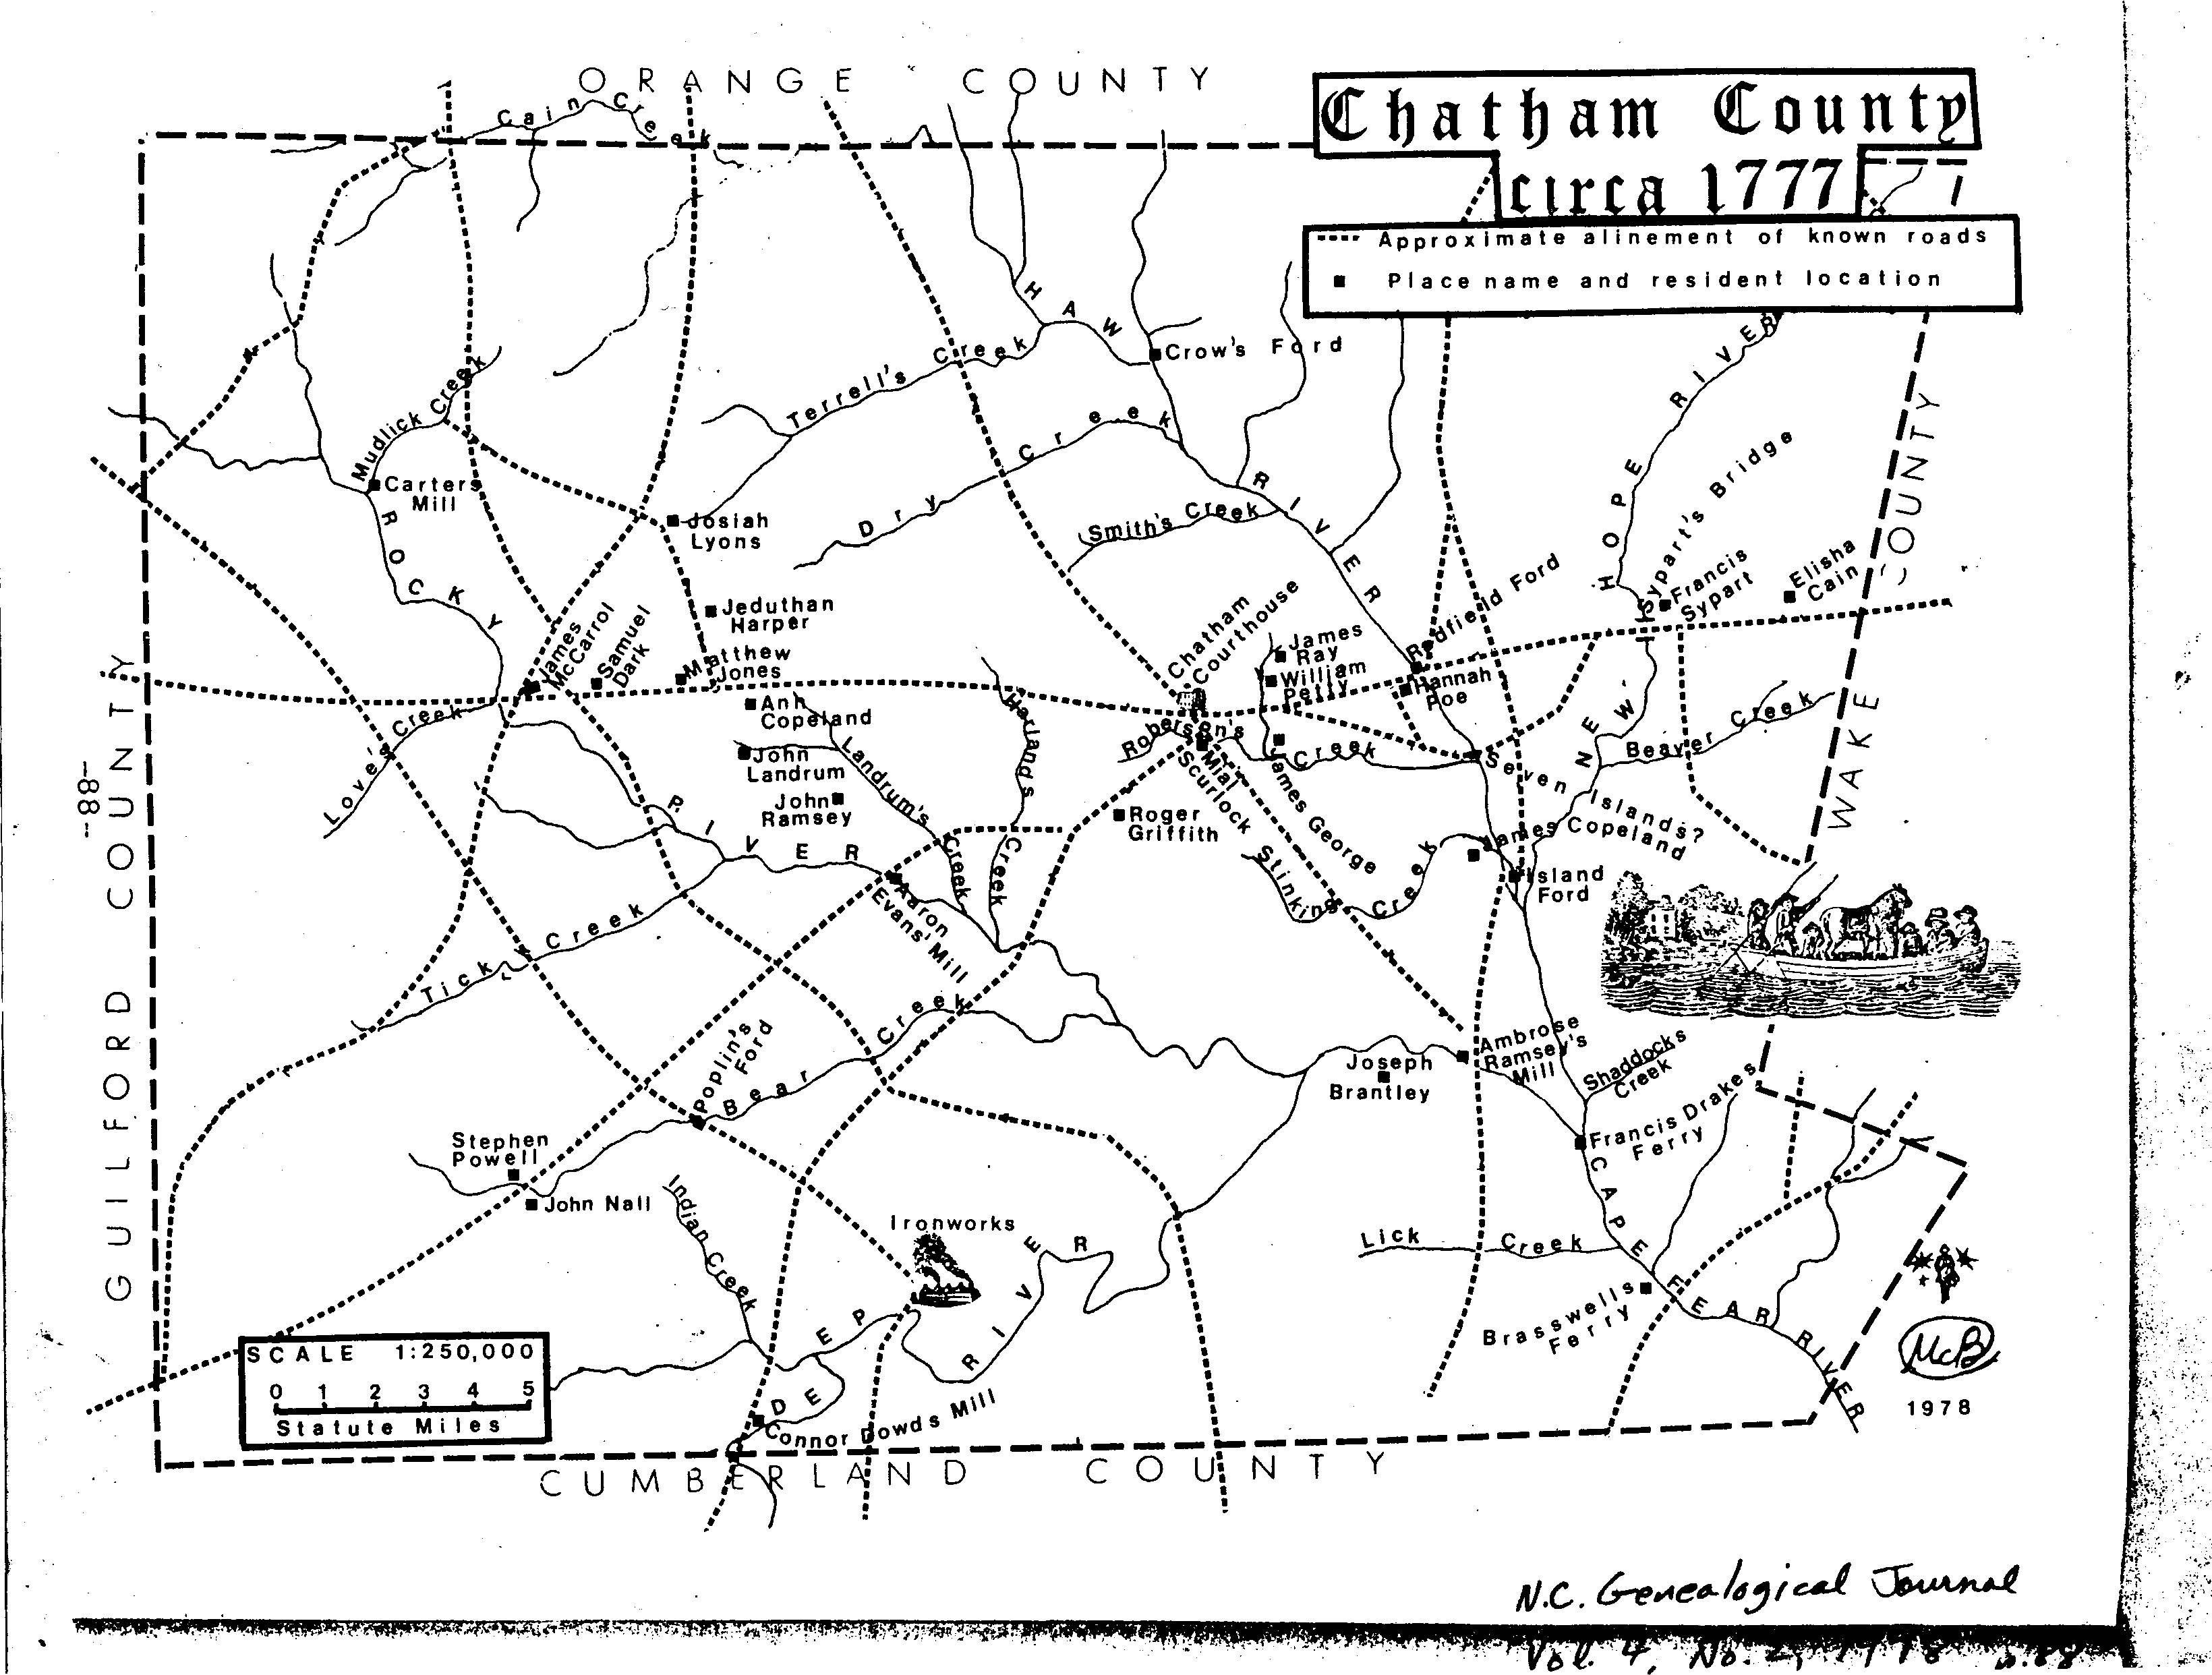 Chatham County Old Trails & Creeks-1770's